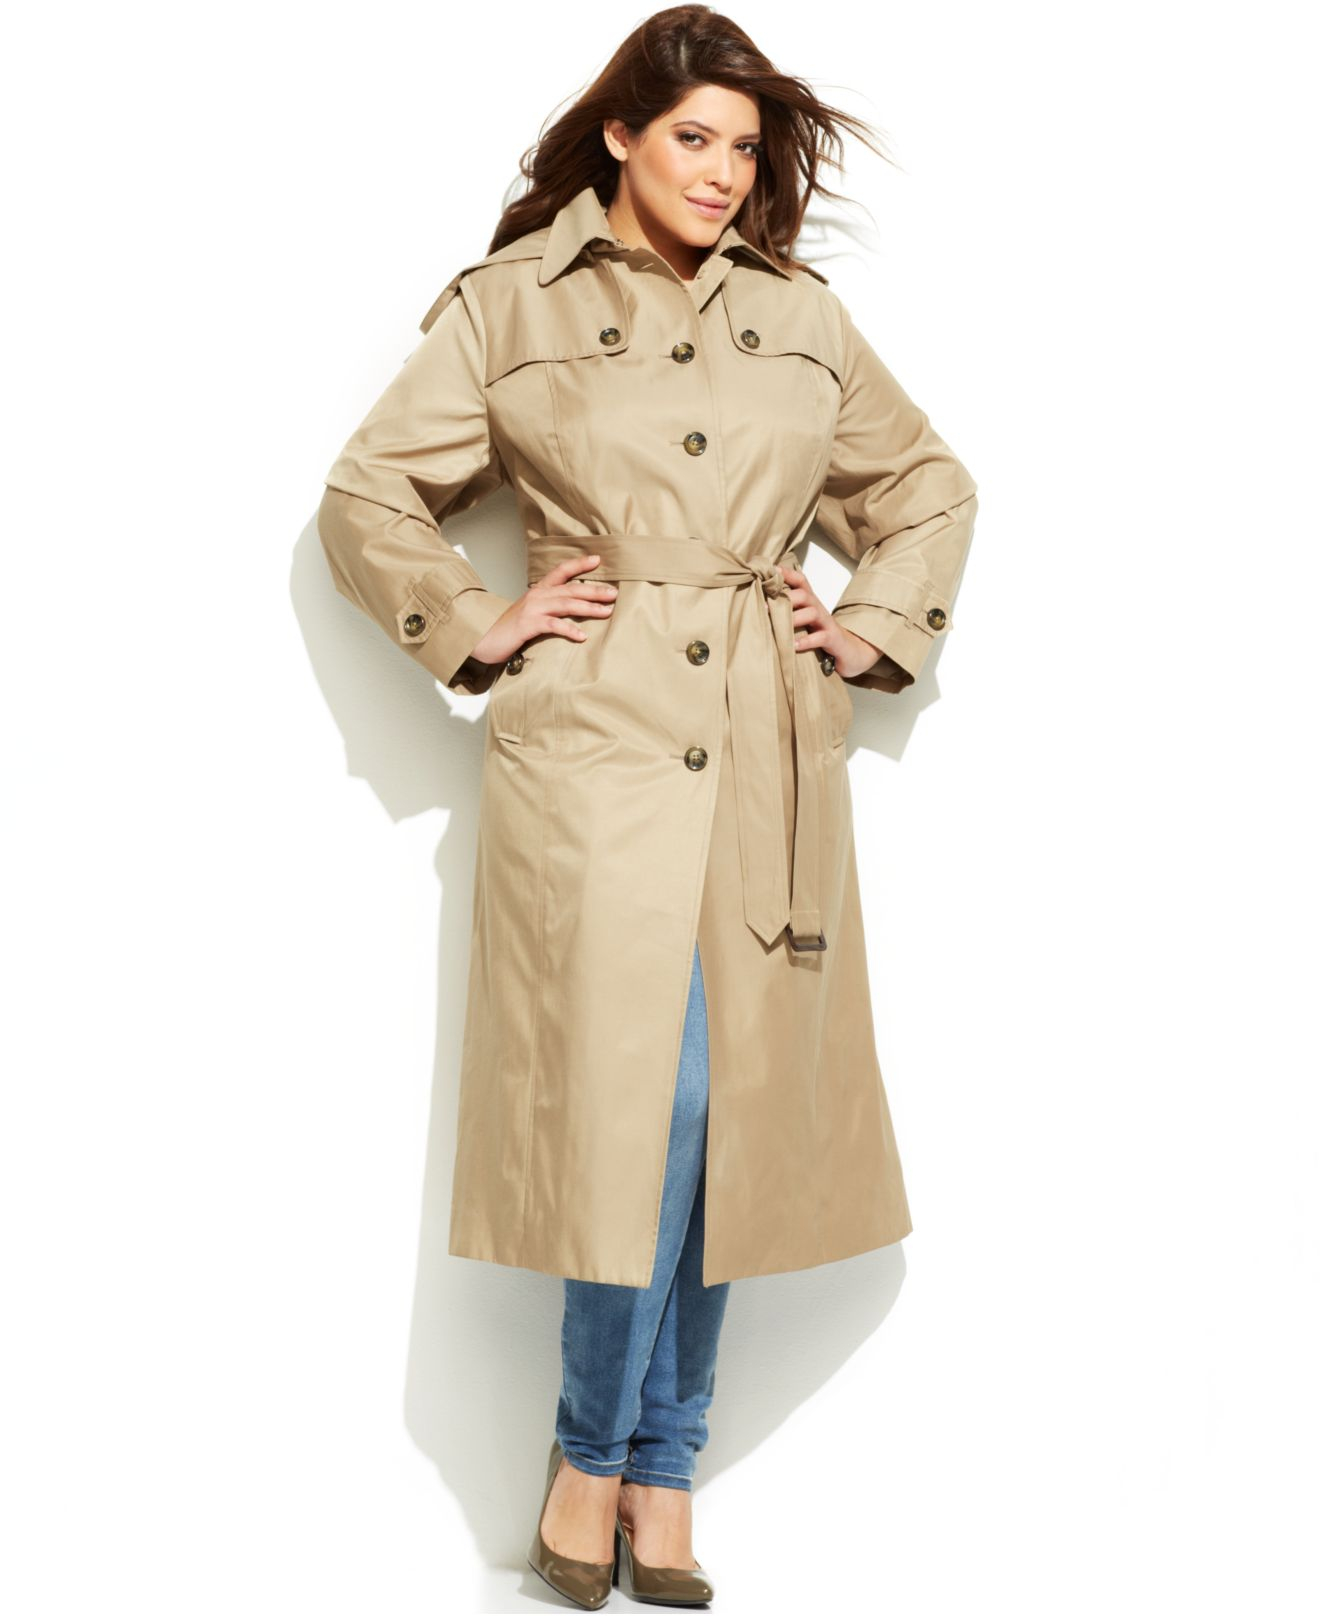 e8fcf4f0e50 Lyst - London Fog Plus Size Hooded Belted Maxi Trench Coat in Natural